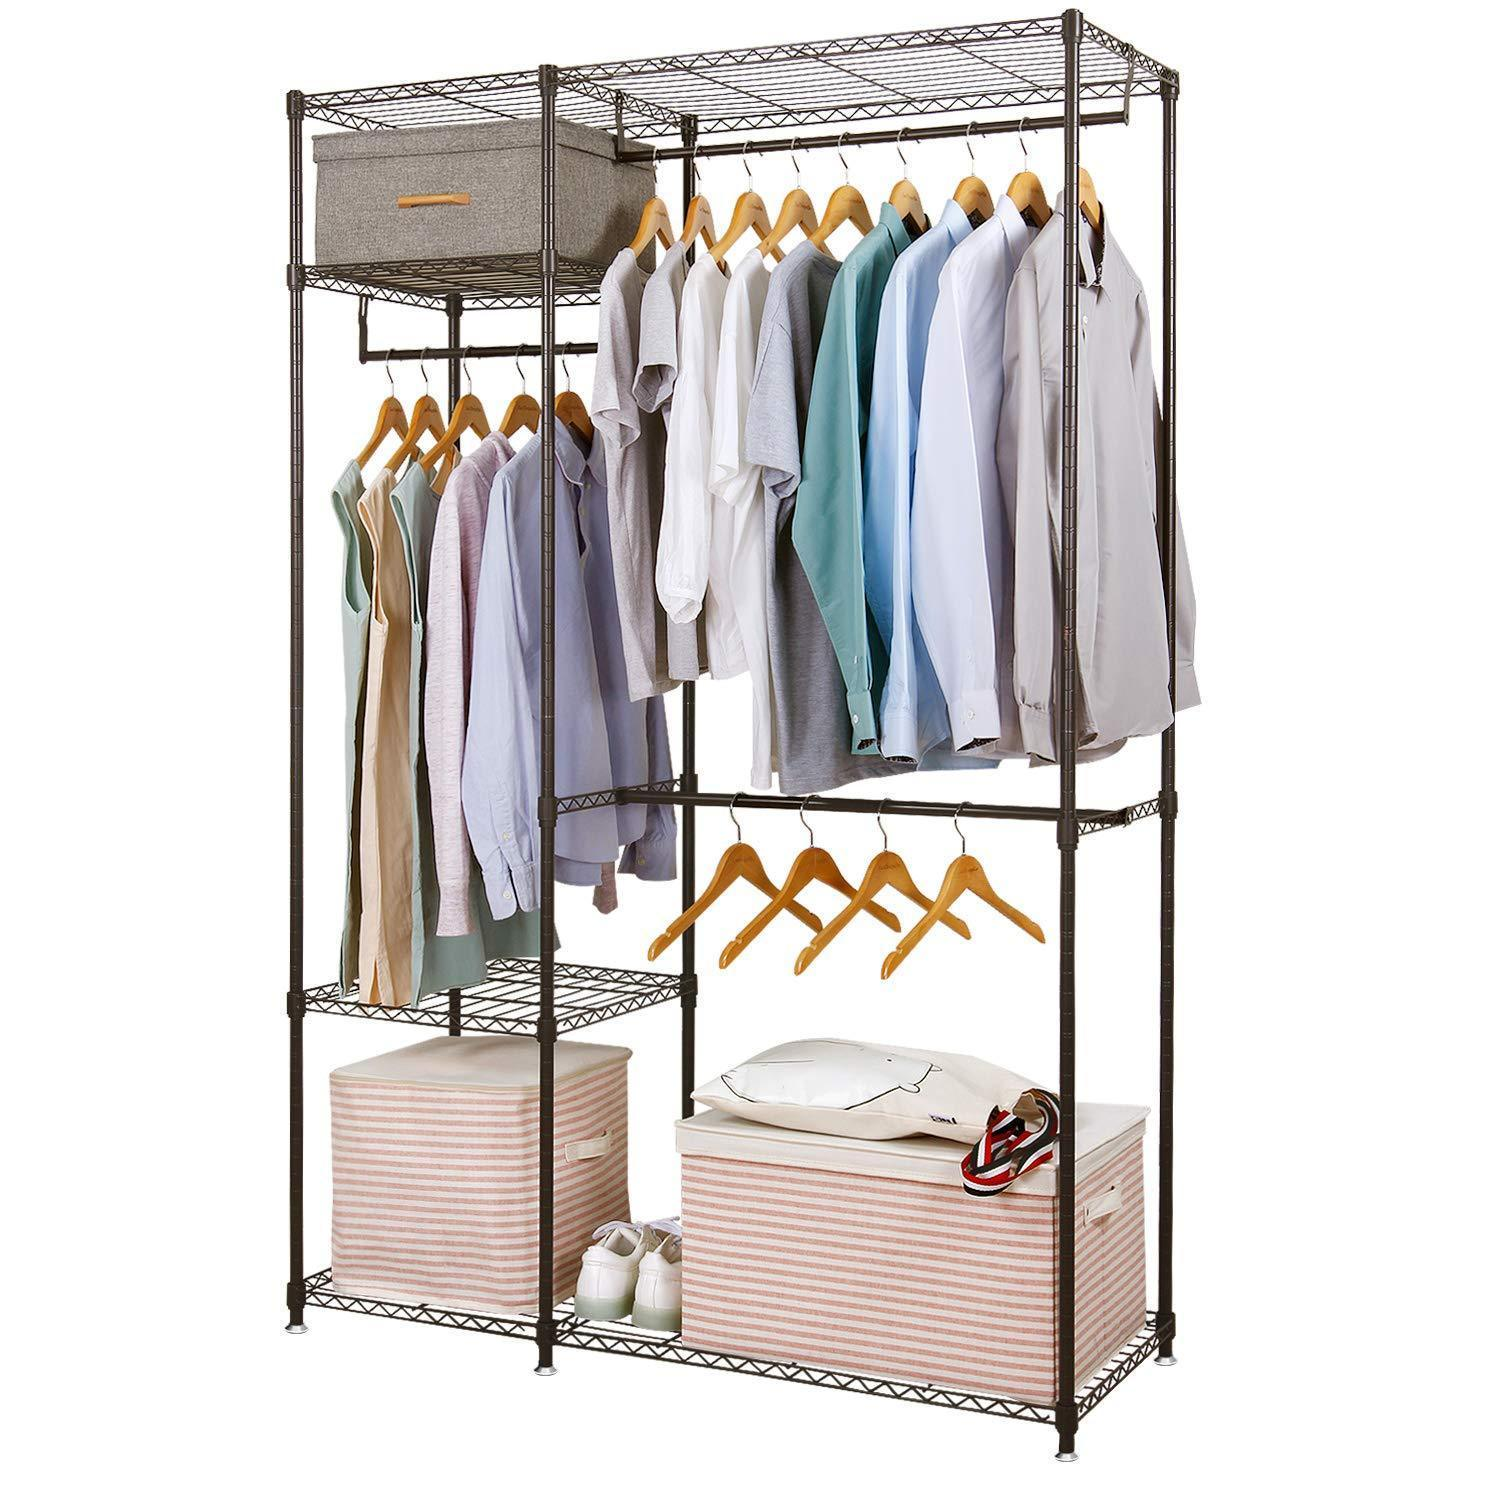 Featured lifewit portable wardrobe clothes closet storage organizer with hanging rod adjustable legs quick and easy to assemble large capacity dark brown